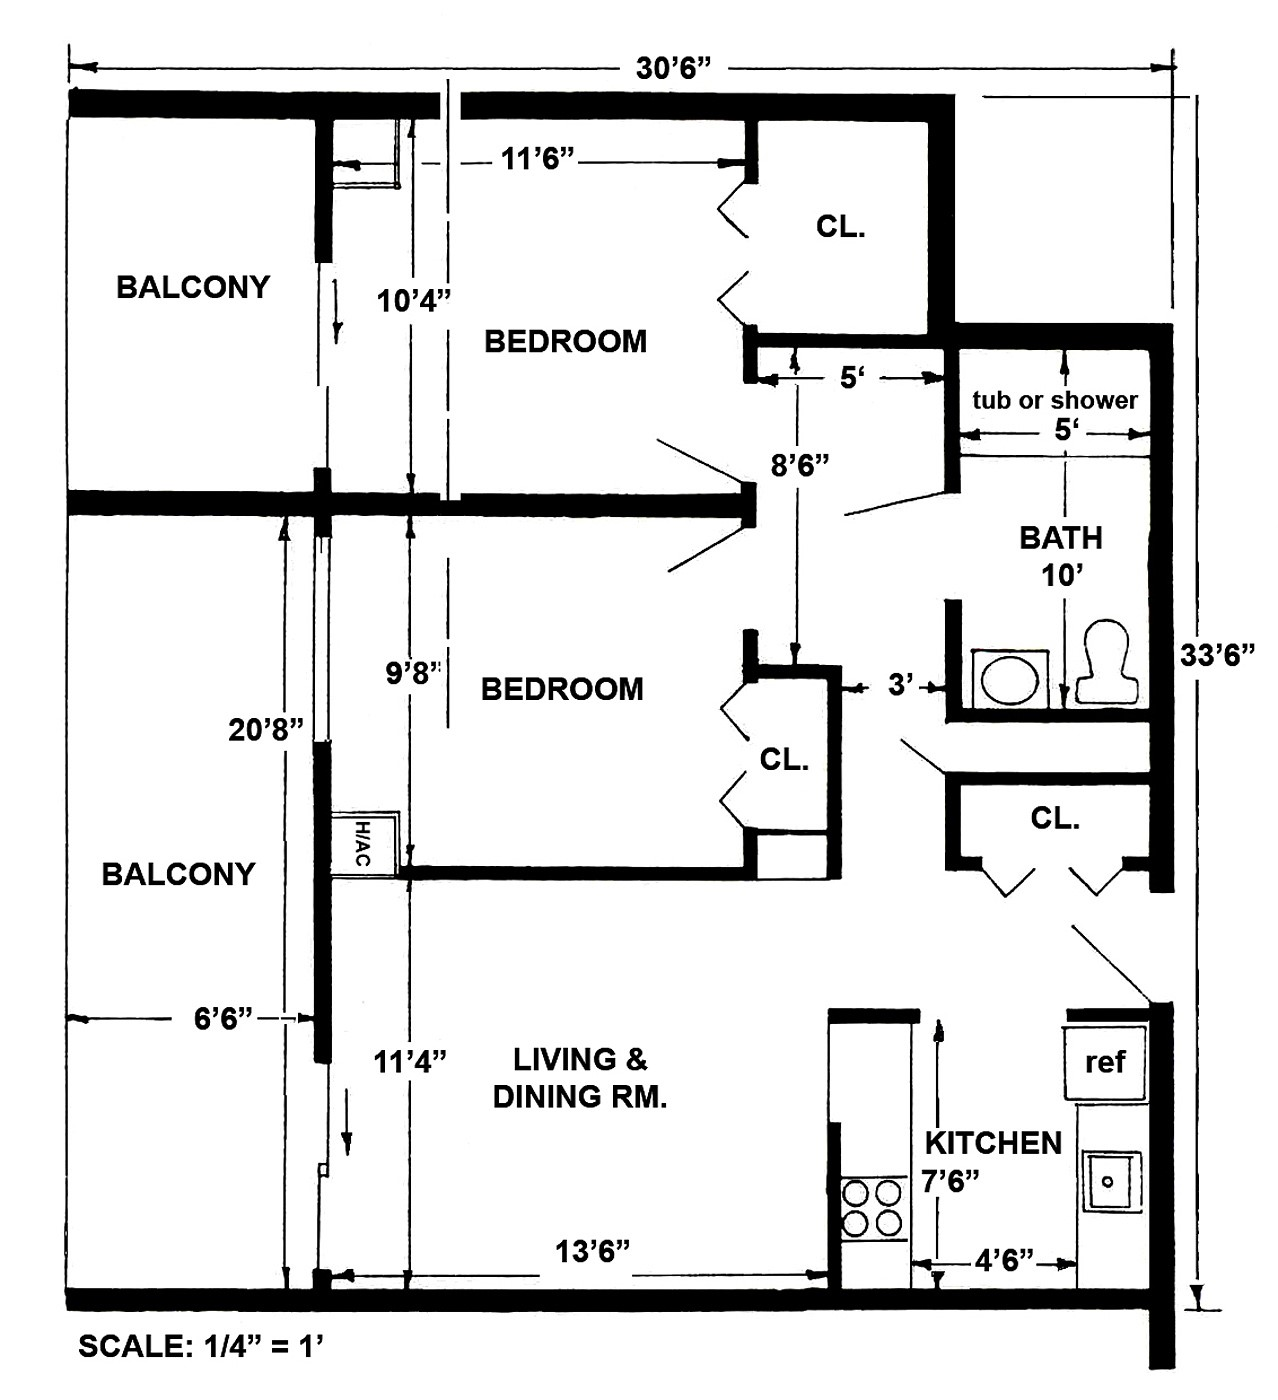 2 Bedroom Layout Large